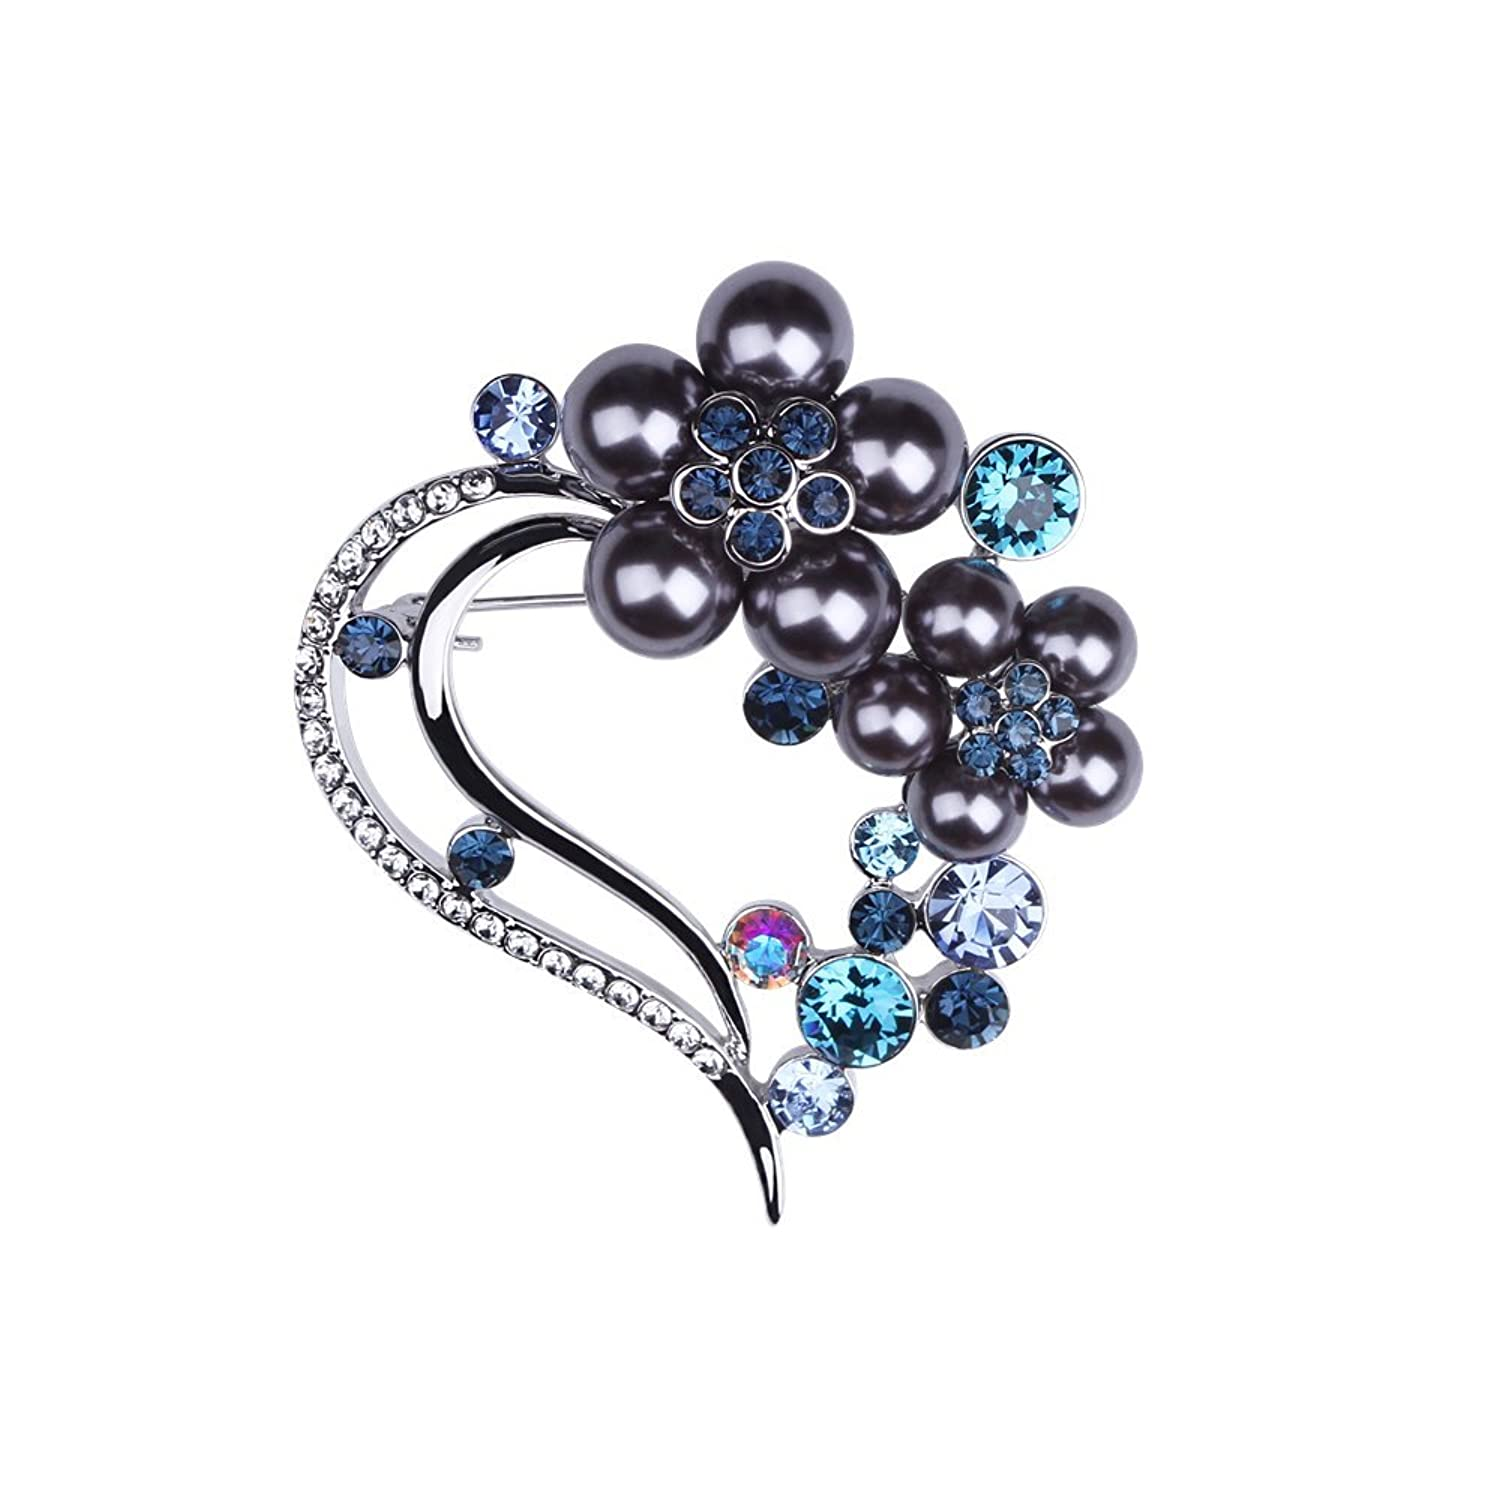 a557546f6 Exquisite Pearl Heart-shaped Women's Brooches Swarovski Crystal Rhinestone  Brooch Pin for Wedding Gift